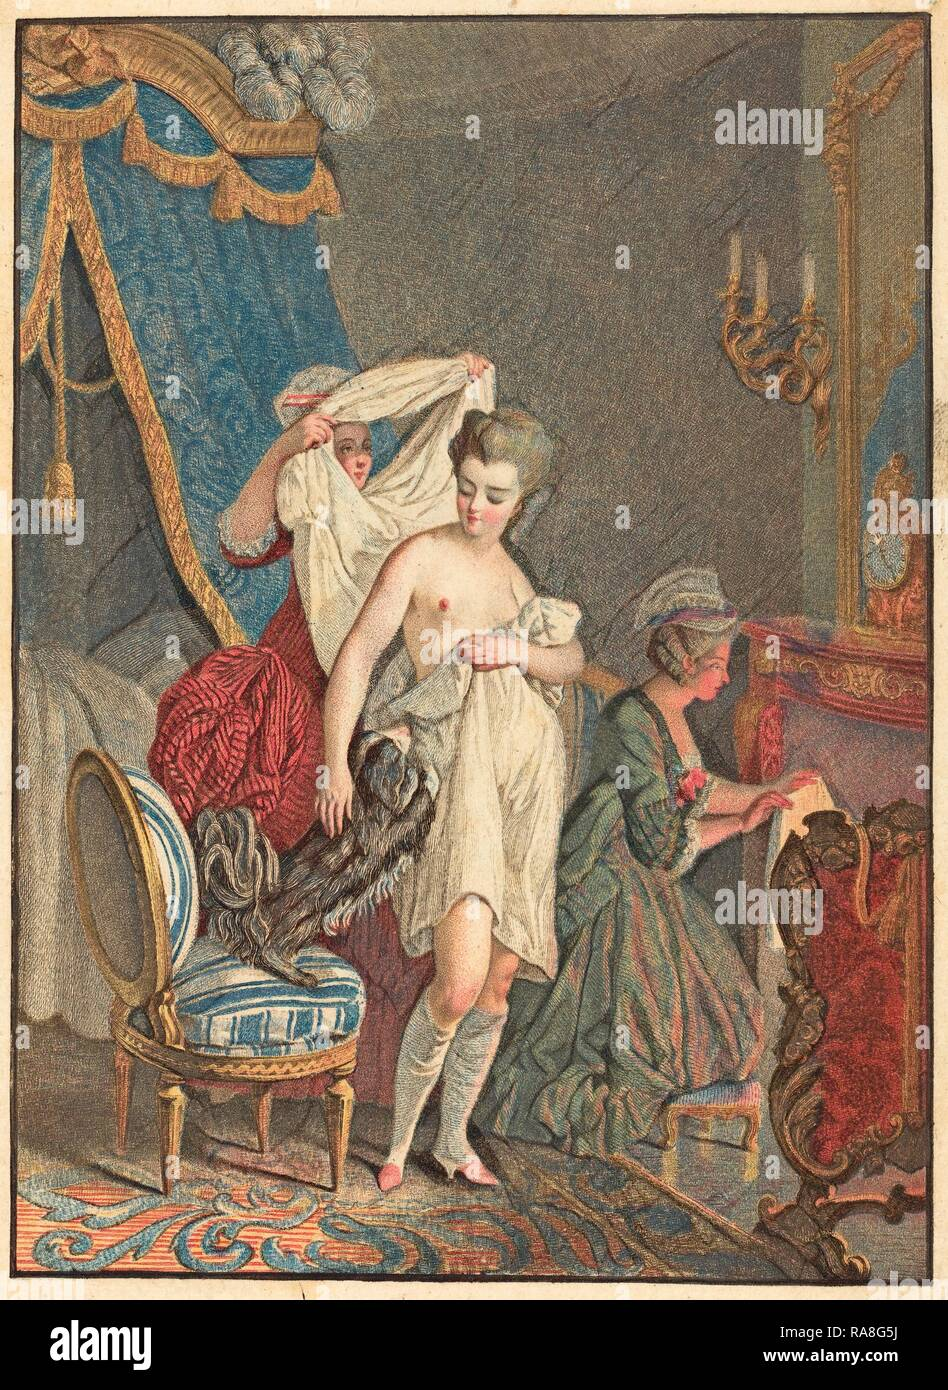 Nicolas Francois Regnault (French, 1746 - c. 1810), Le Lever, color stipple etching and etching. Reimagined Stock Photo